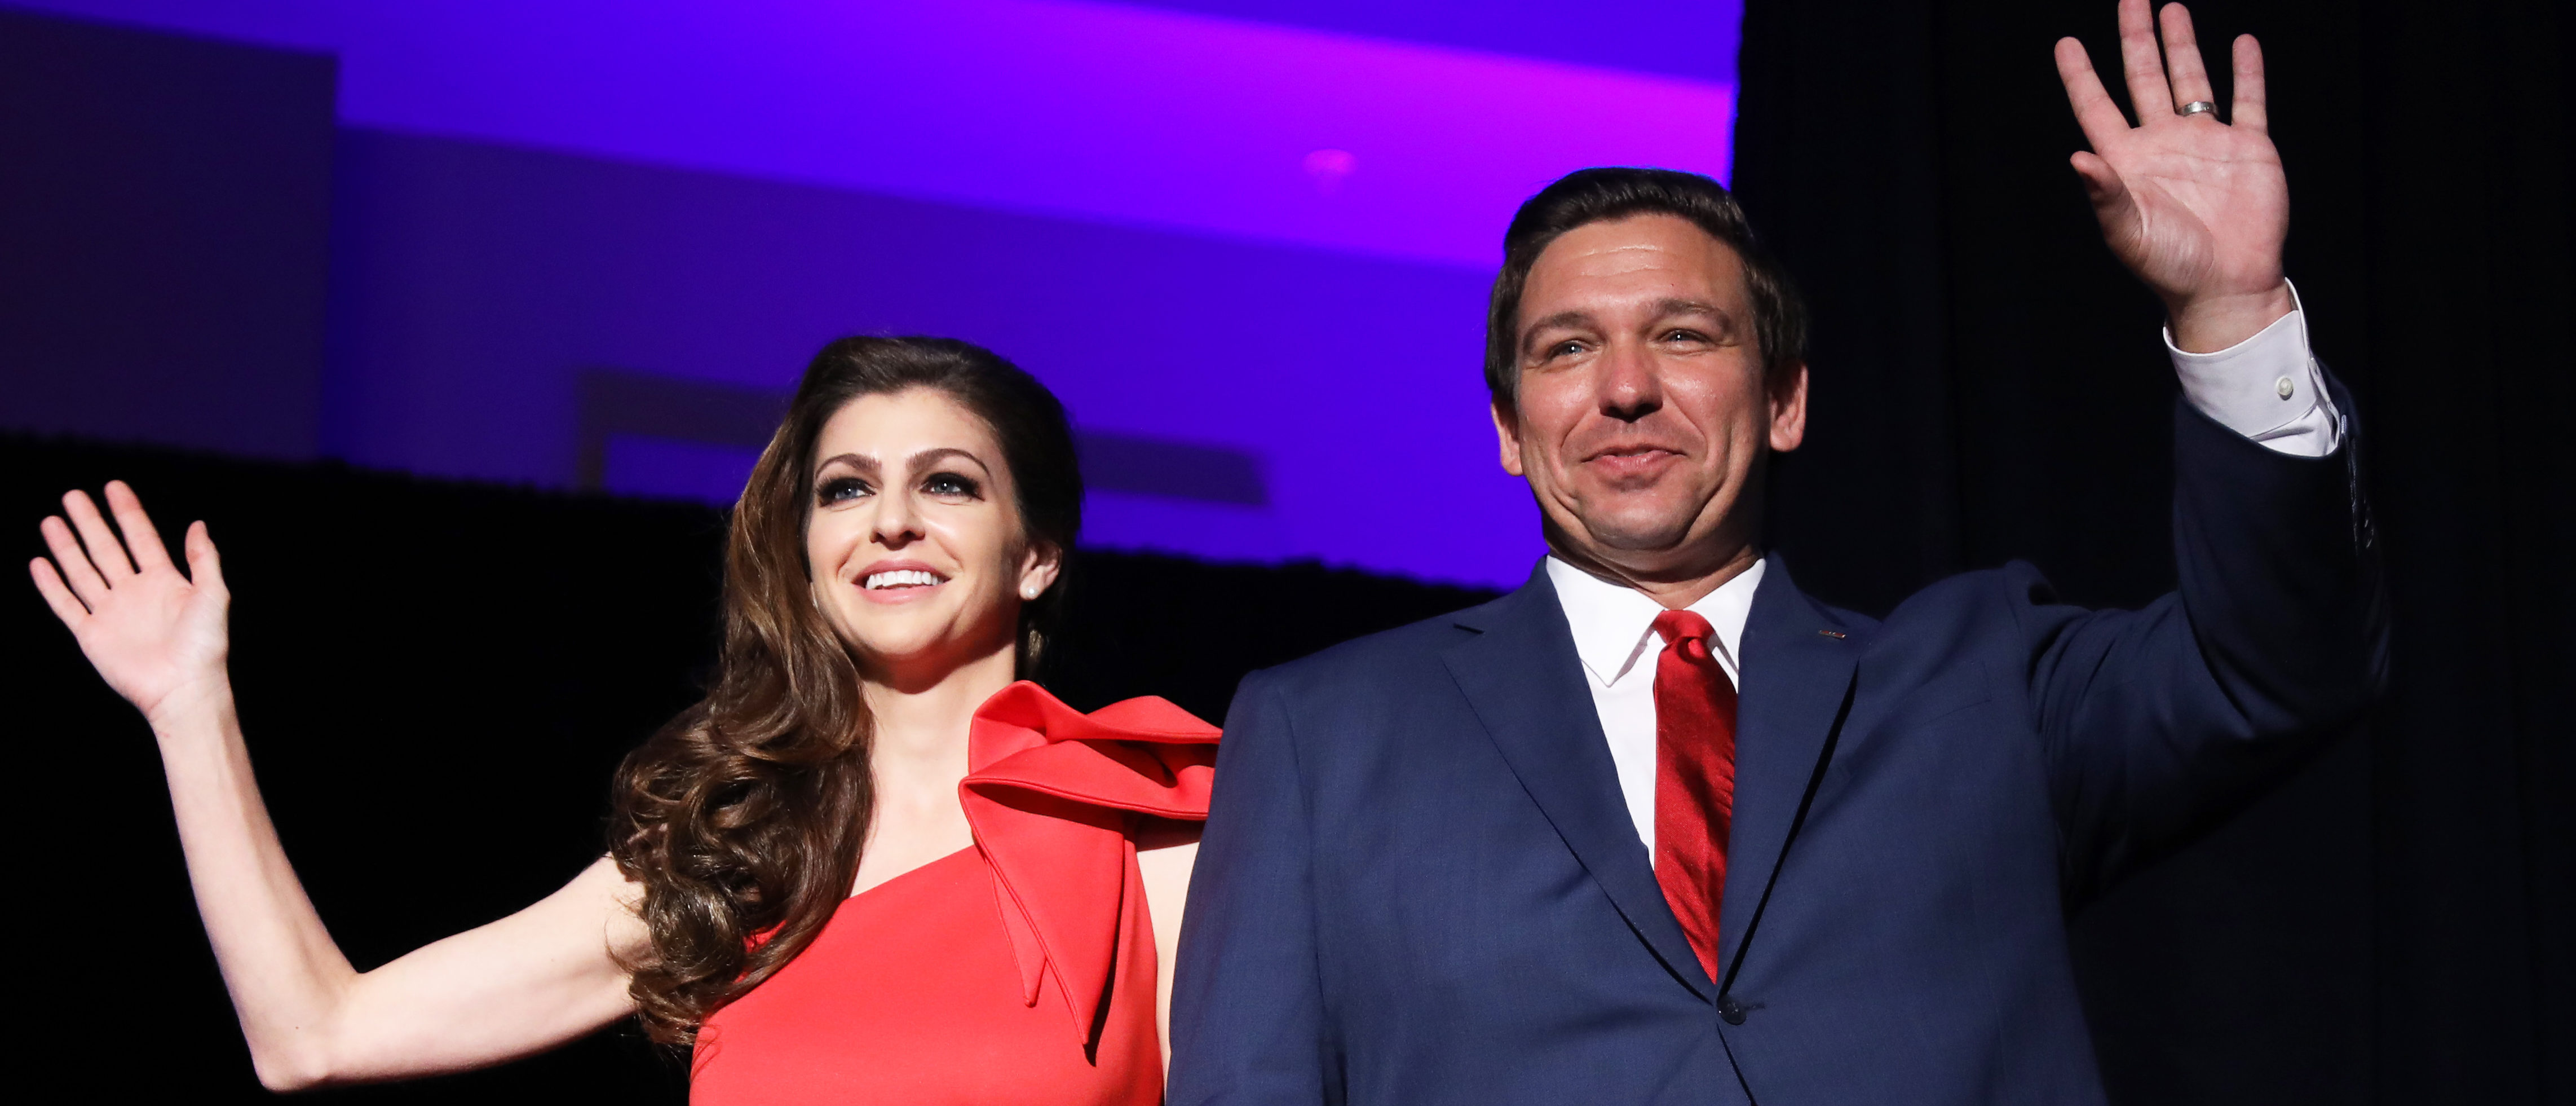 Republican gubernatorial candidate Ron DeSantis and his wife Casey react after appearing at his midterm election night party in Orlando, Florida, U.S. November 6, 2018. REUTERS/Carlo Allegri